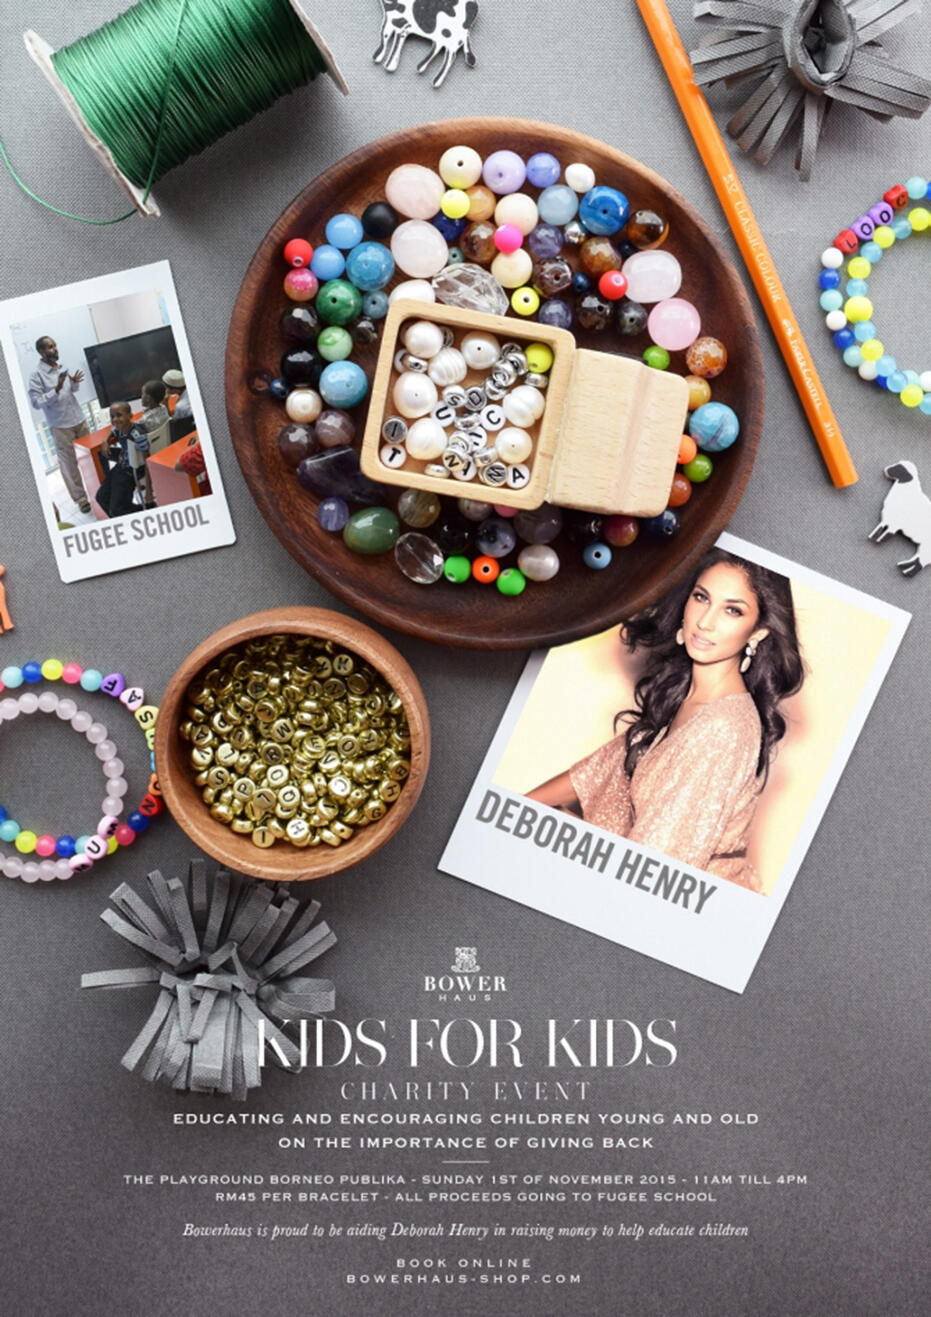 Bowerhaus Kids For Kids Charity Event-1